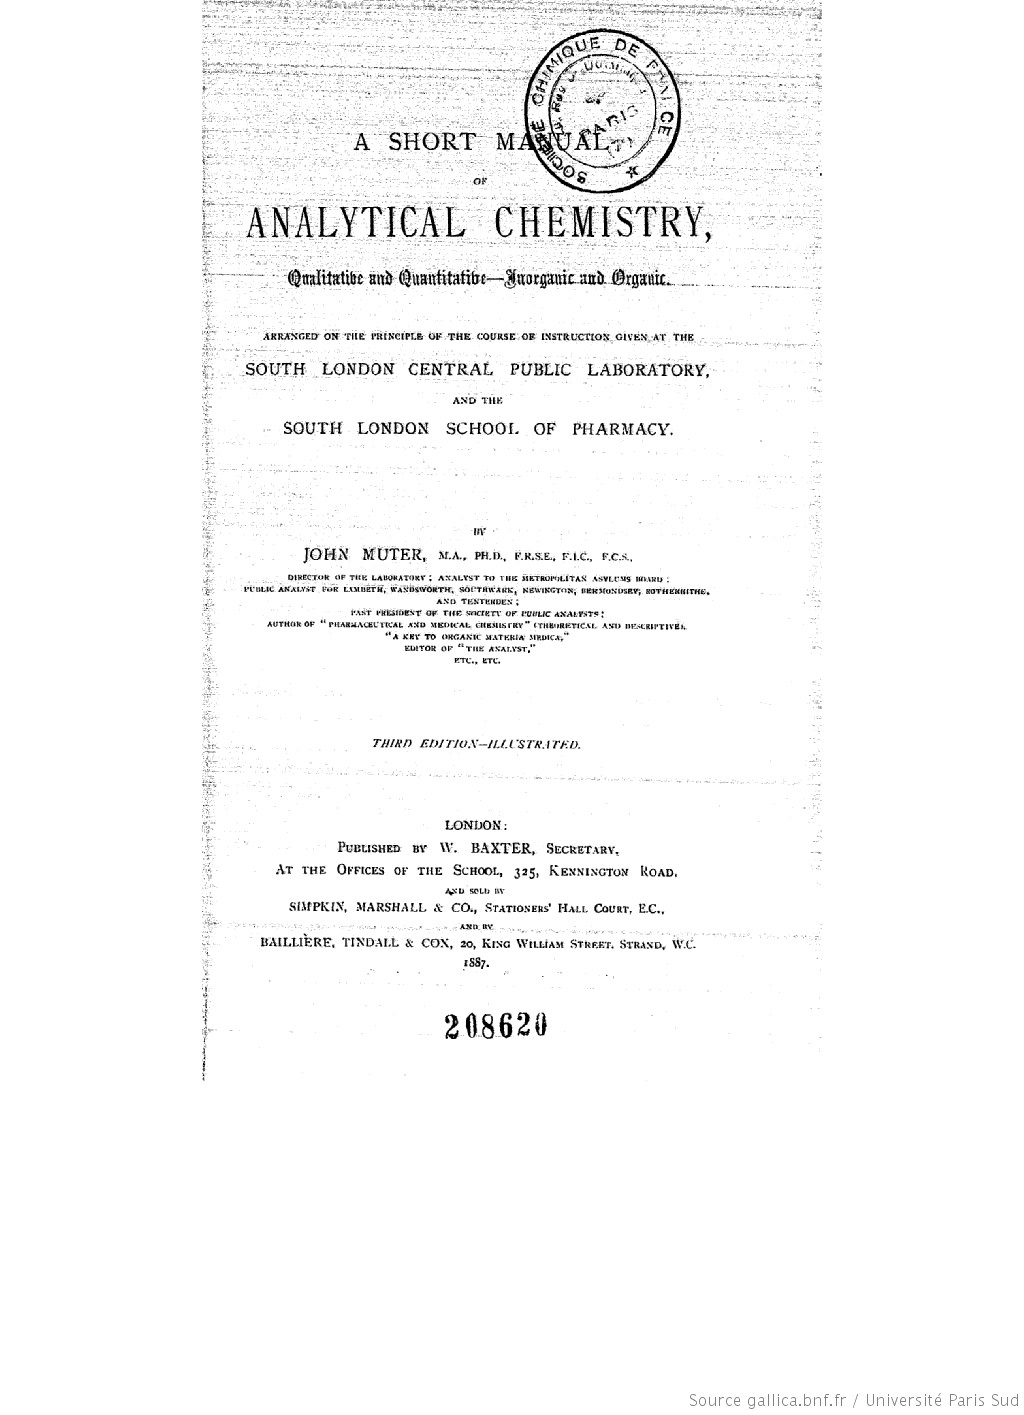 A short manual of analytical chemistry : qualitative and quantitative-anorganic and organic